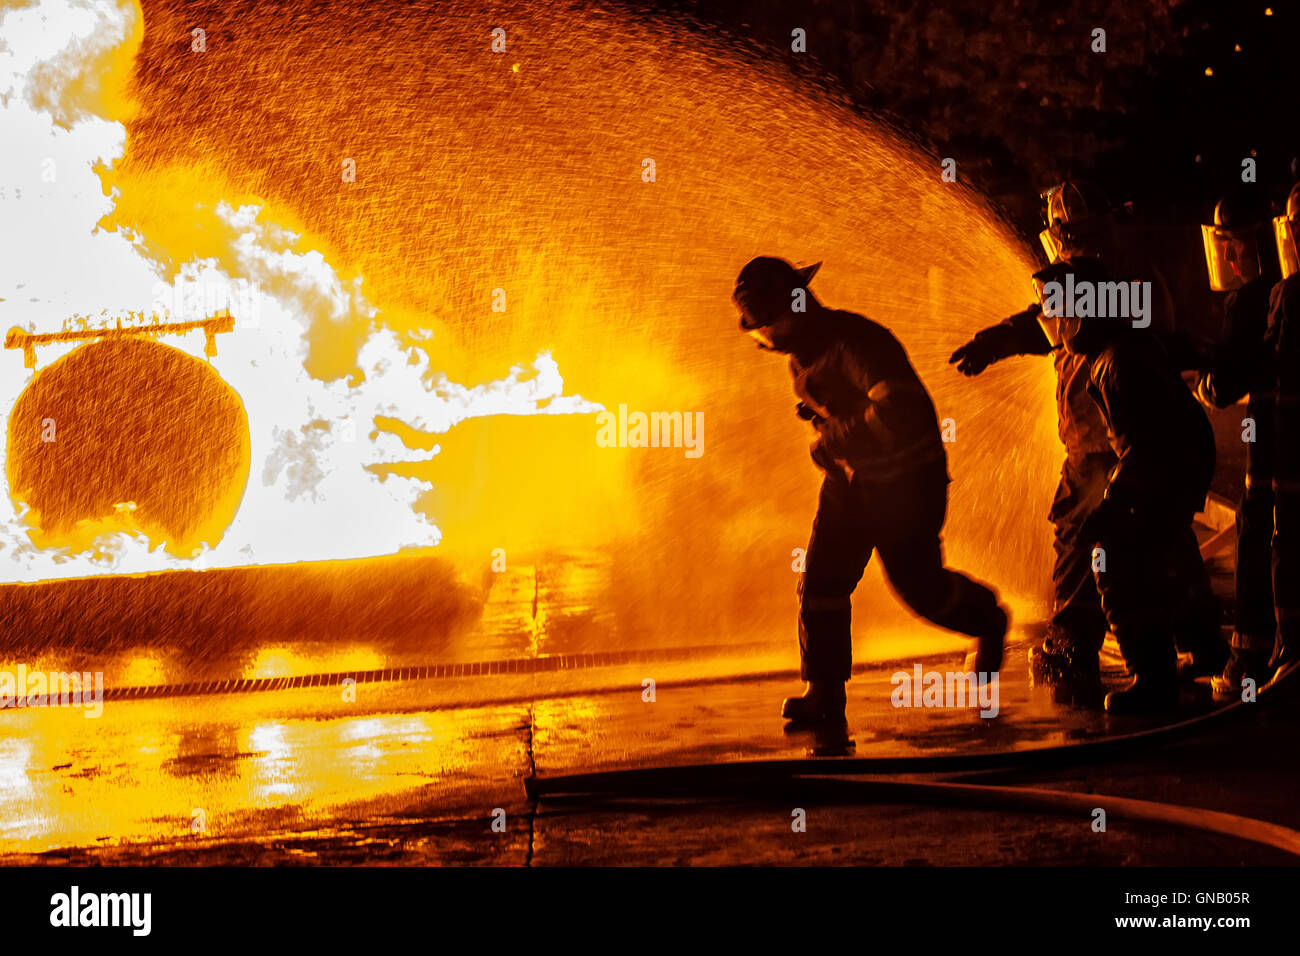 Firefighter running towards fire - Stock Image